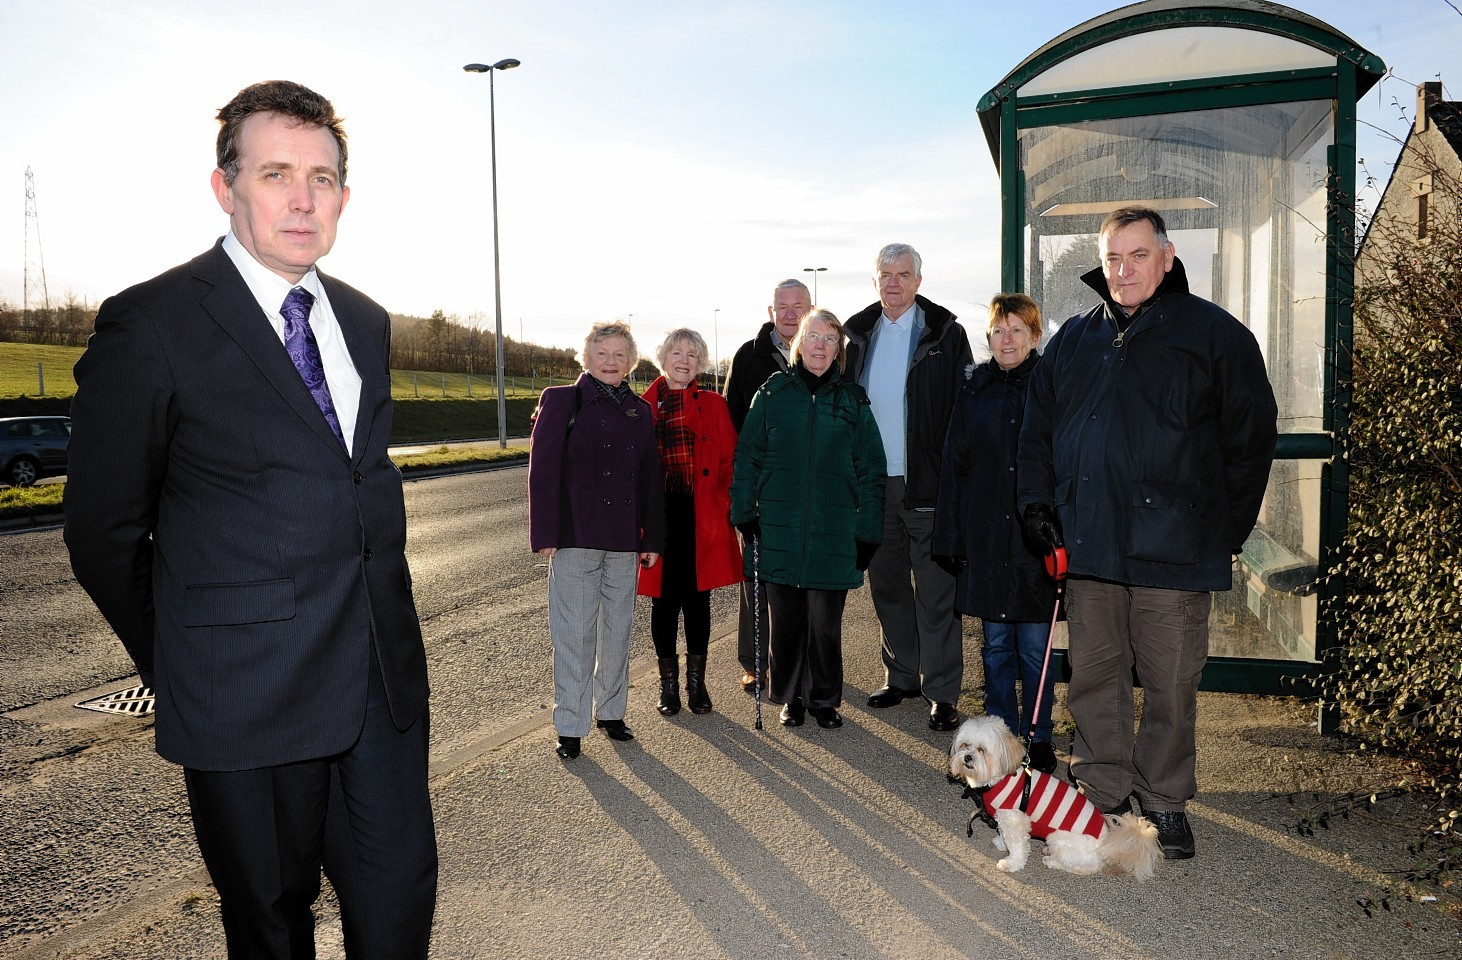 Councillor Steve Delaney with residents of Kingswells who are angry at the removal of the bus stop on the A944 at Kingswells